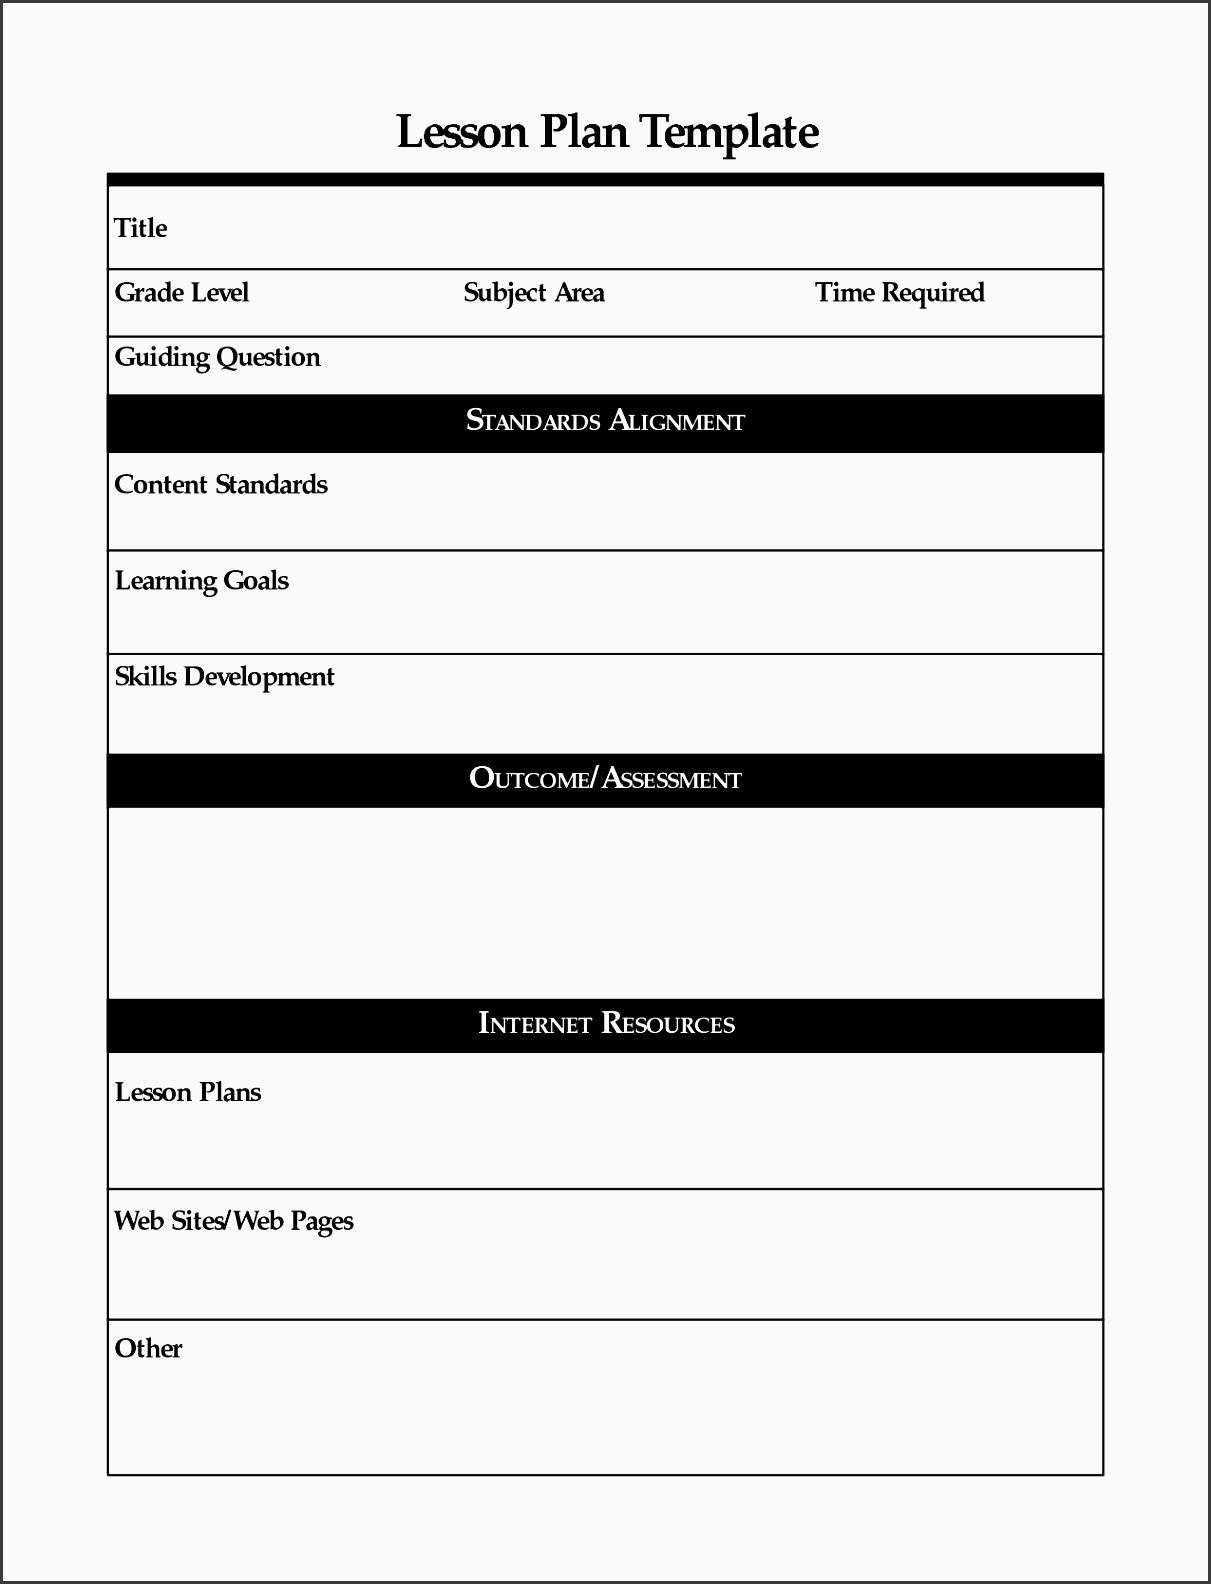 9 free lesson planner template online sampletemplatess for Singapore math lesson plan template